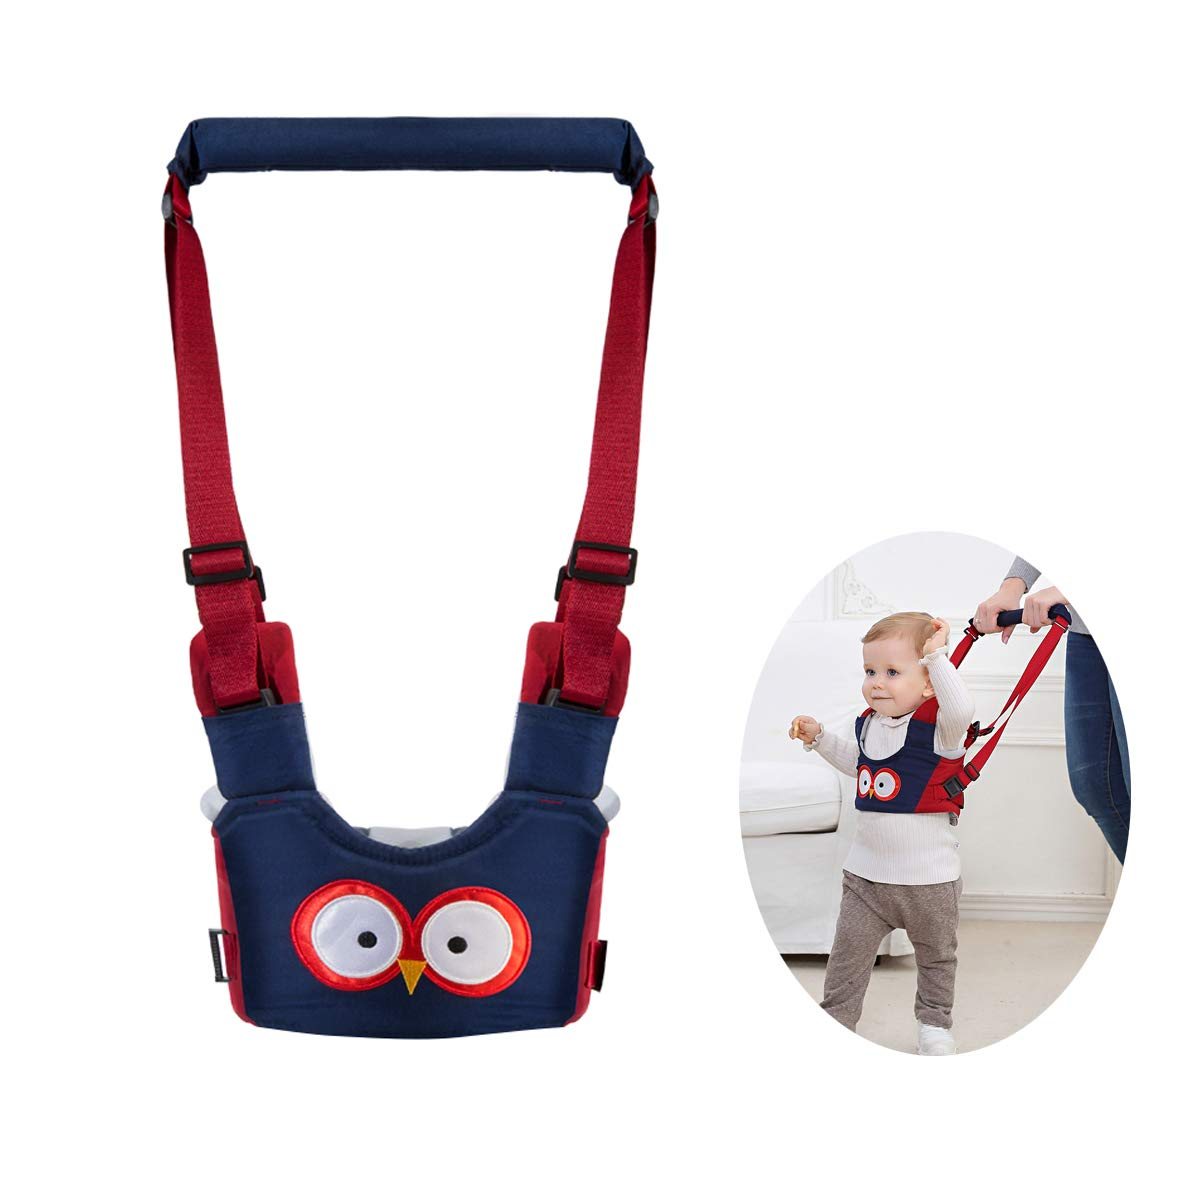 Baby Walking Harness Adjustable Baby Walker Assistant Protective Belt for Kids Infant Toddlers (Blue)